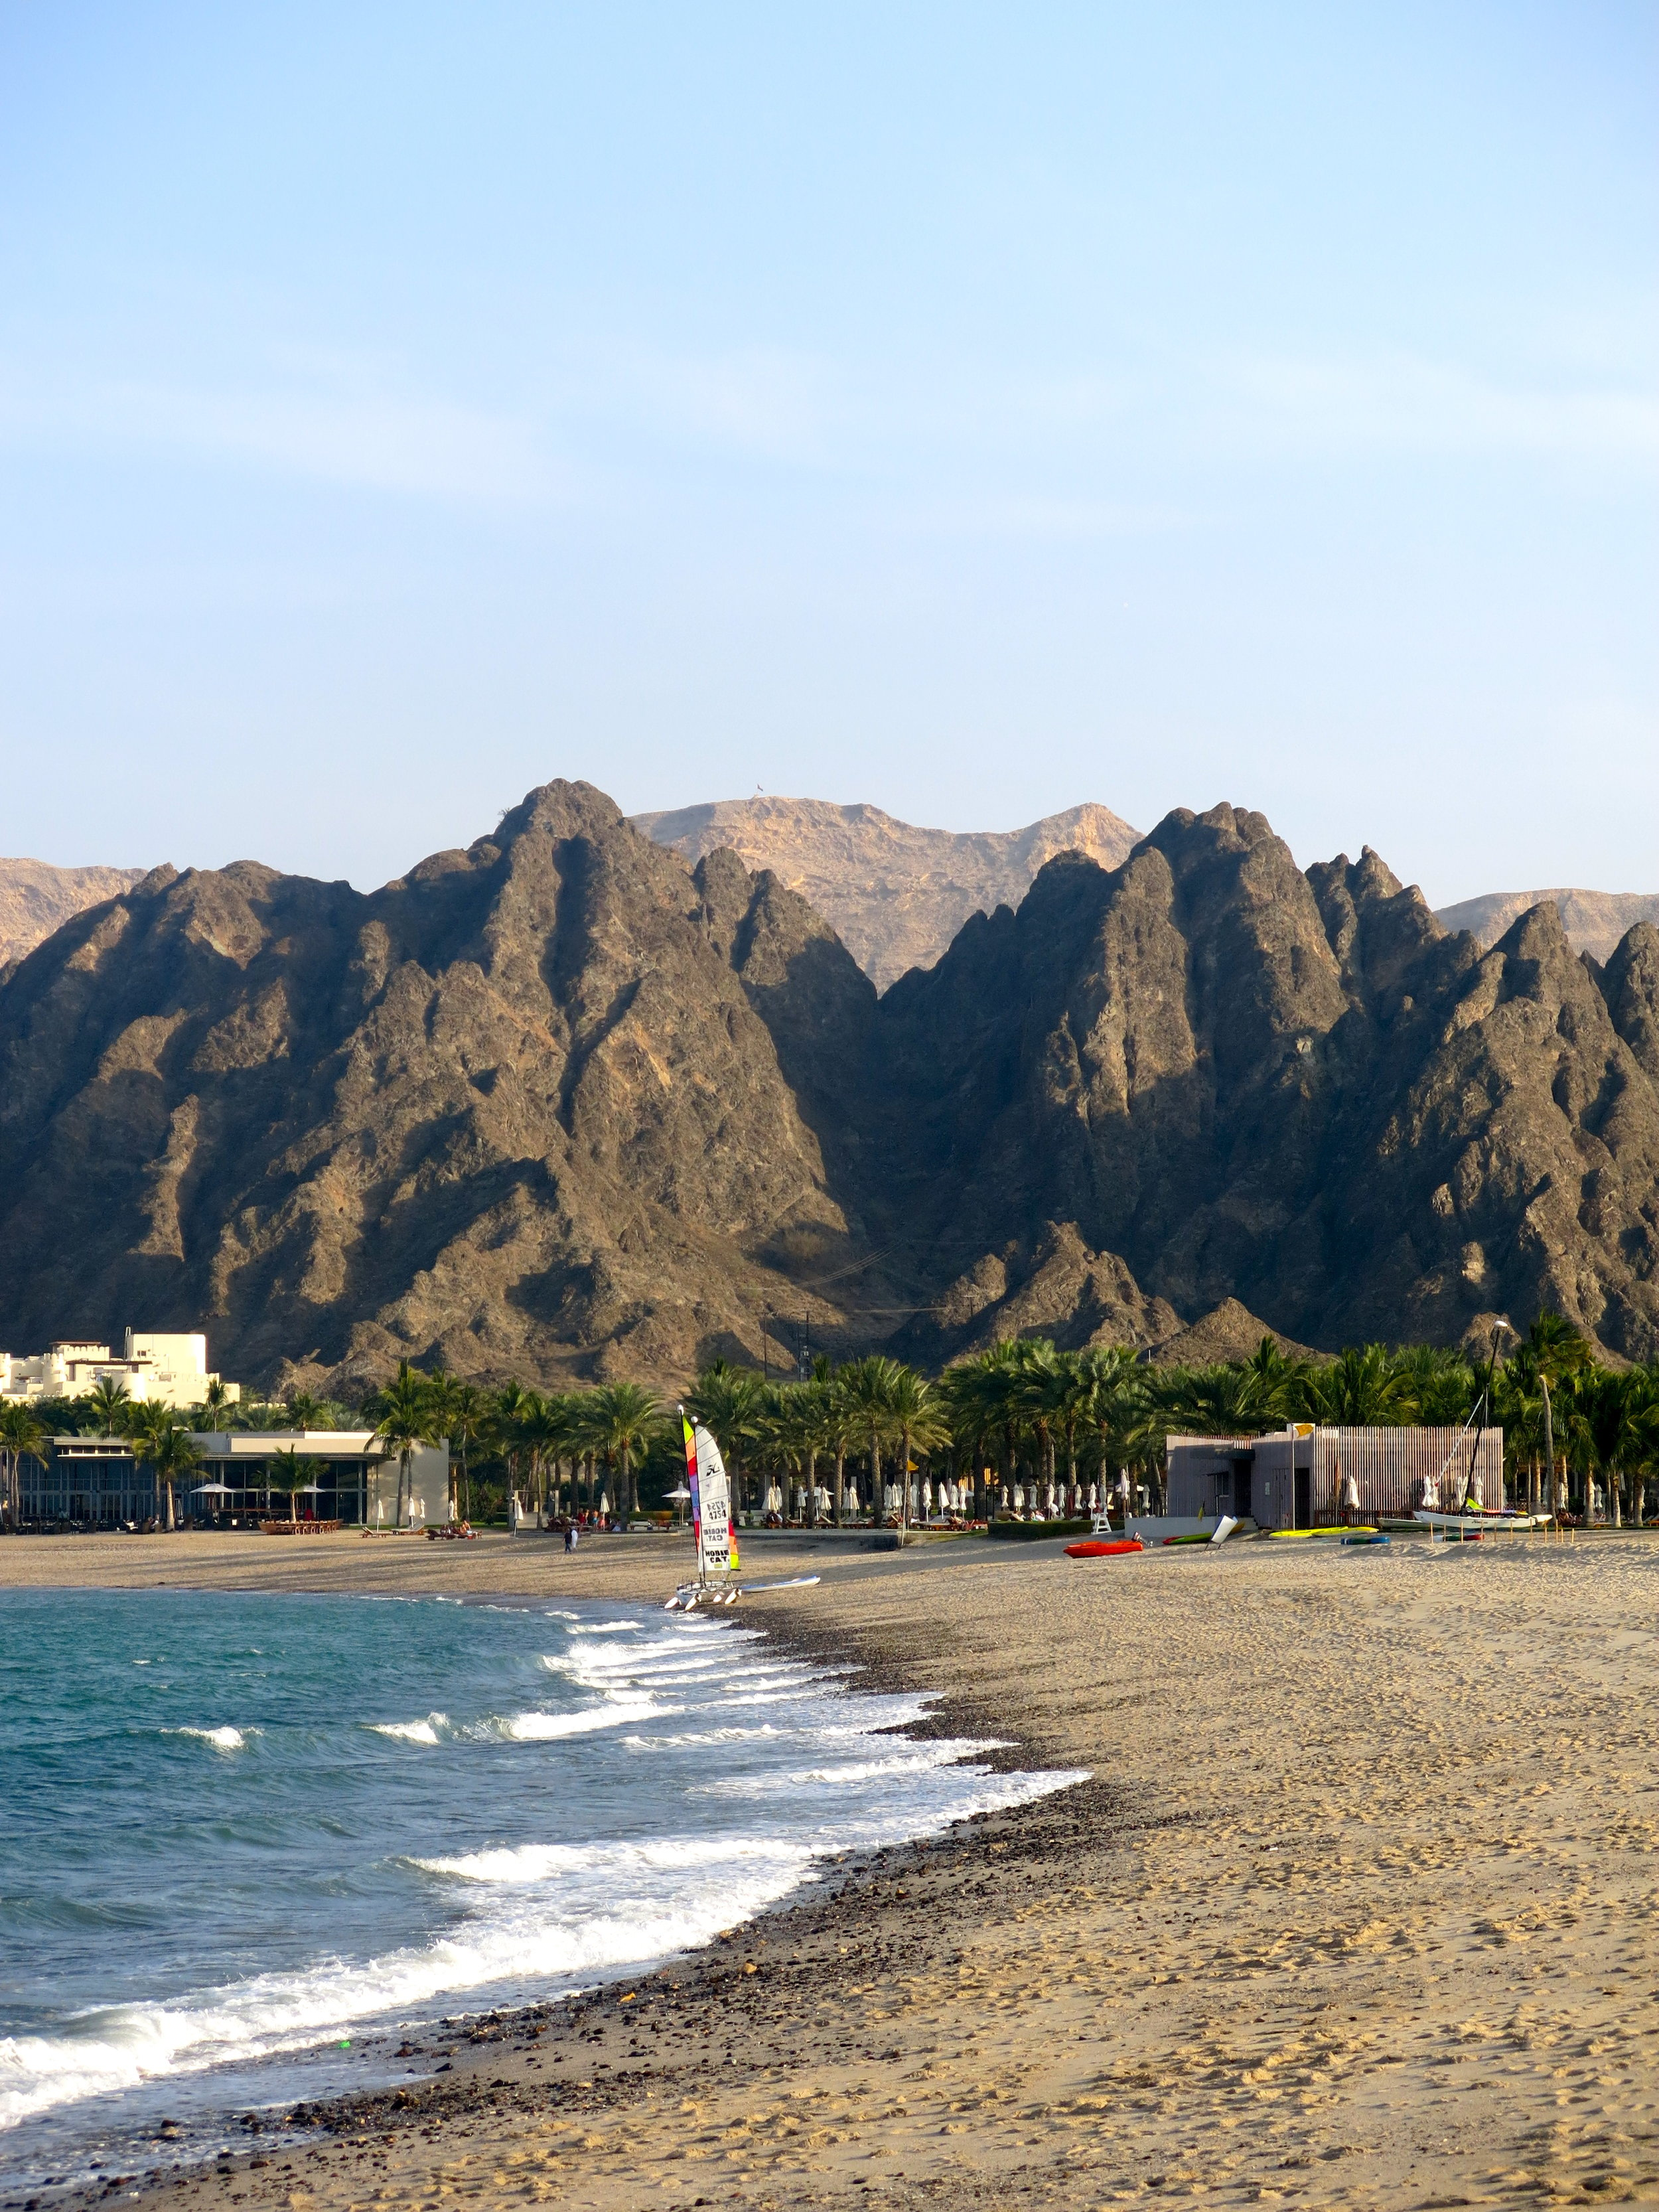 Dreamy rocky mountains encircle the bay of the Al-Bustan palace